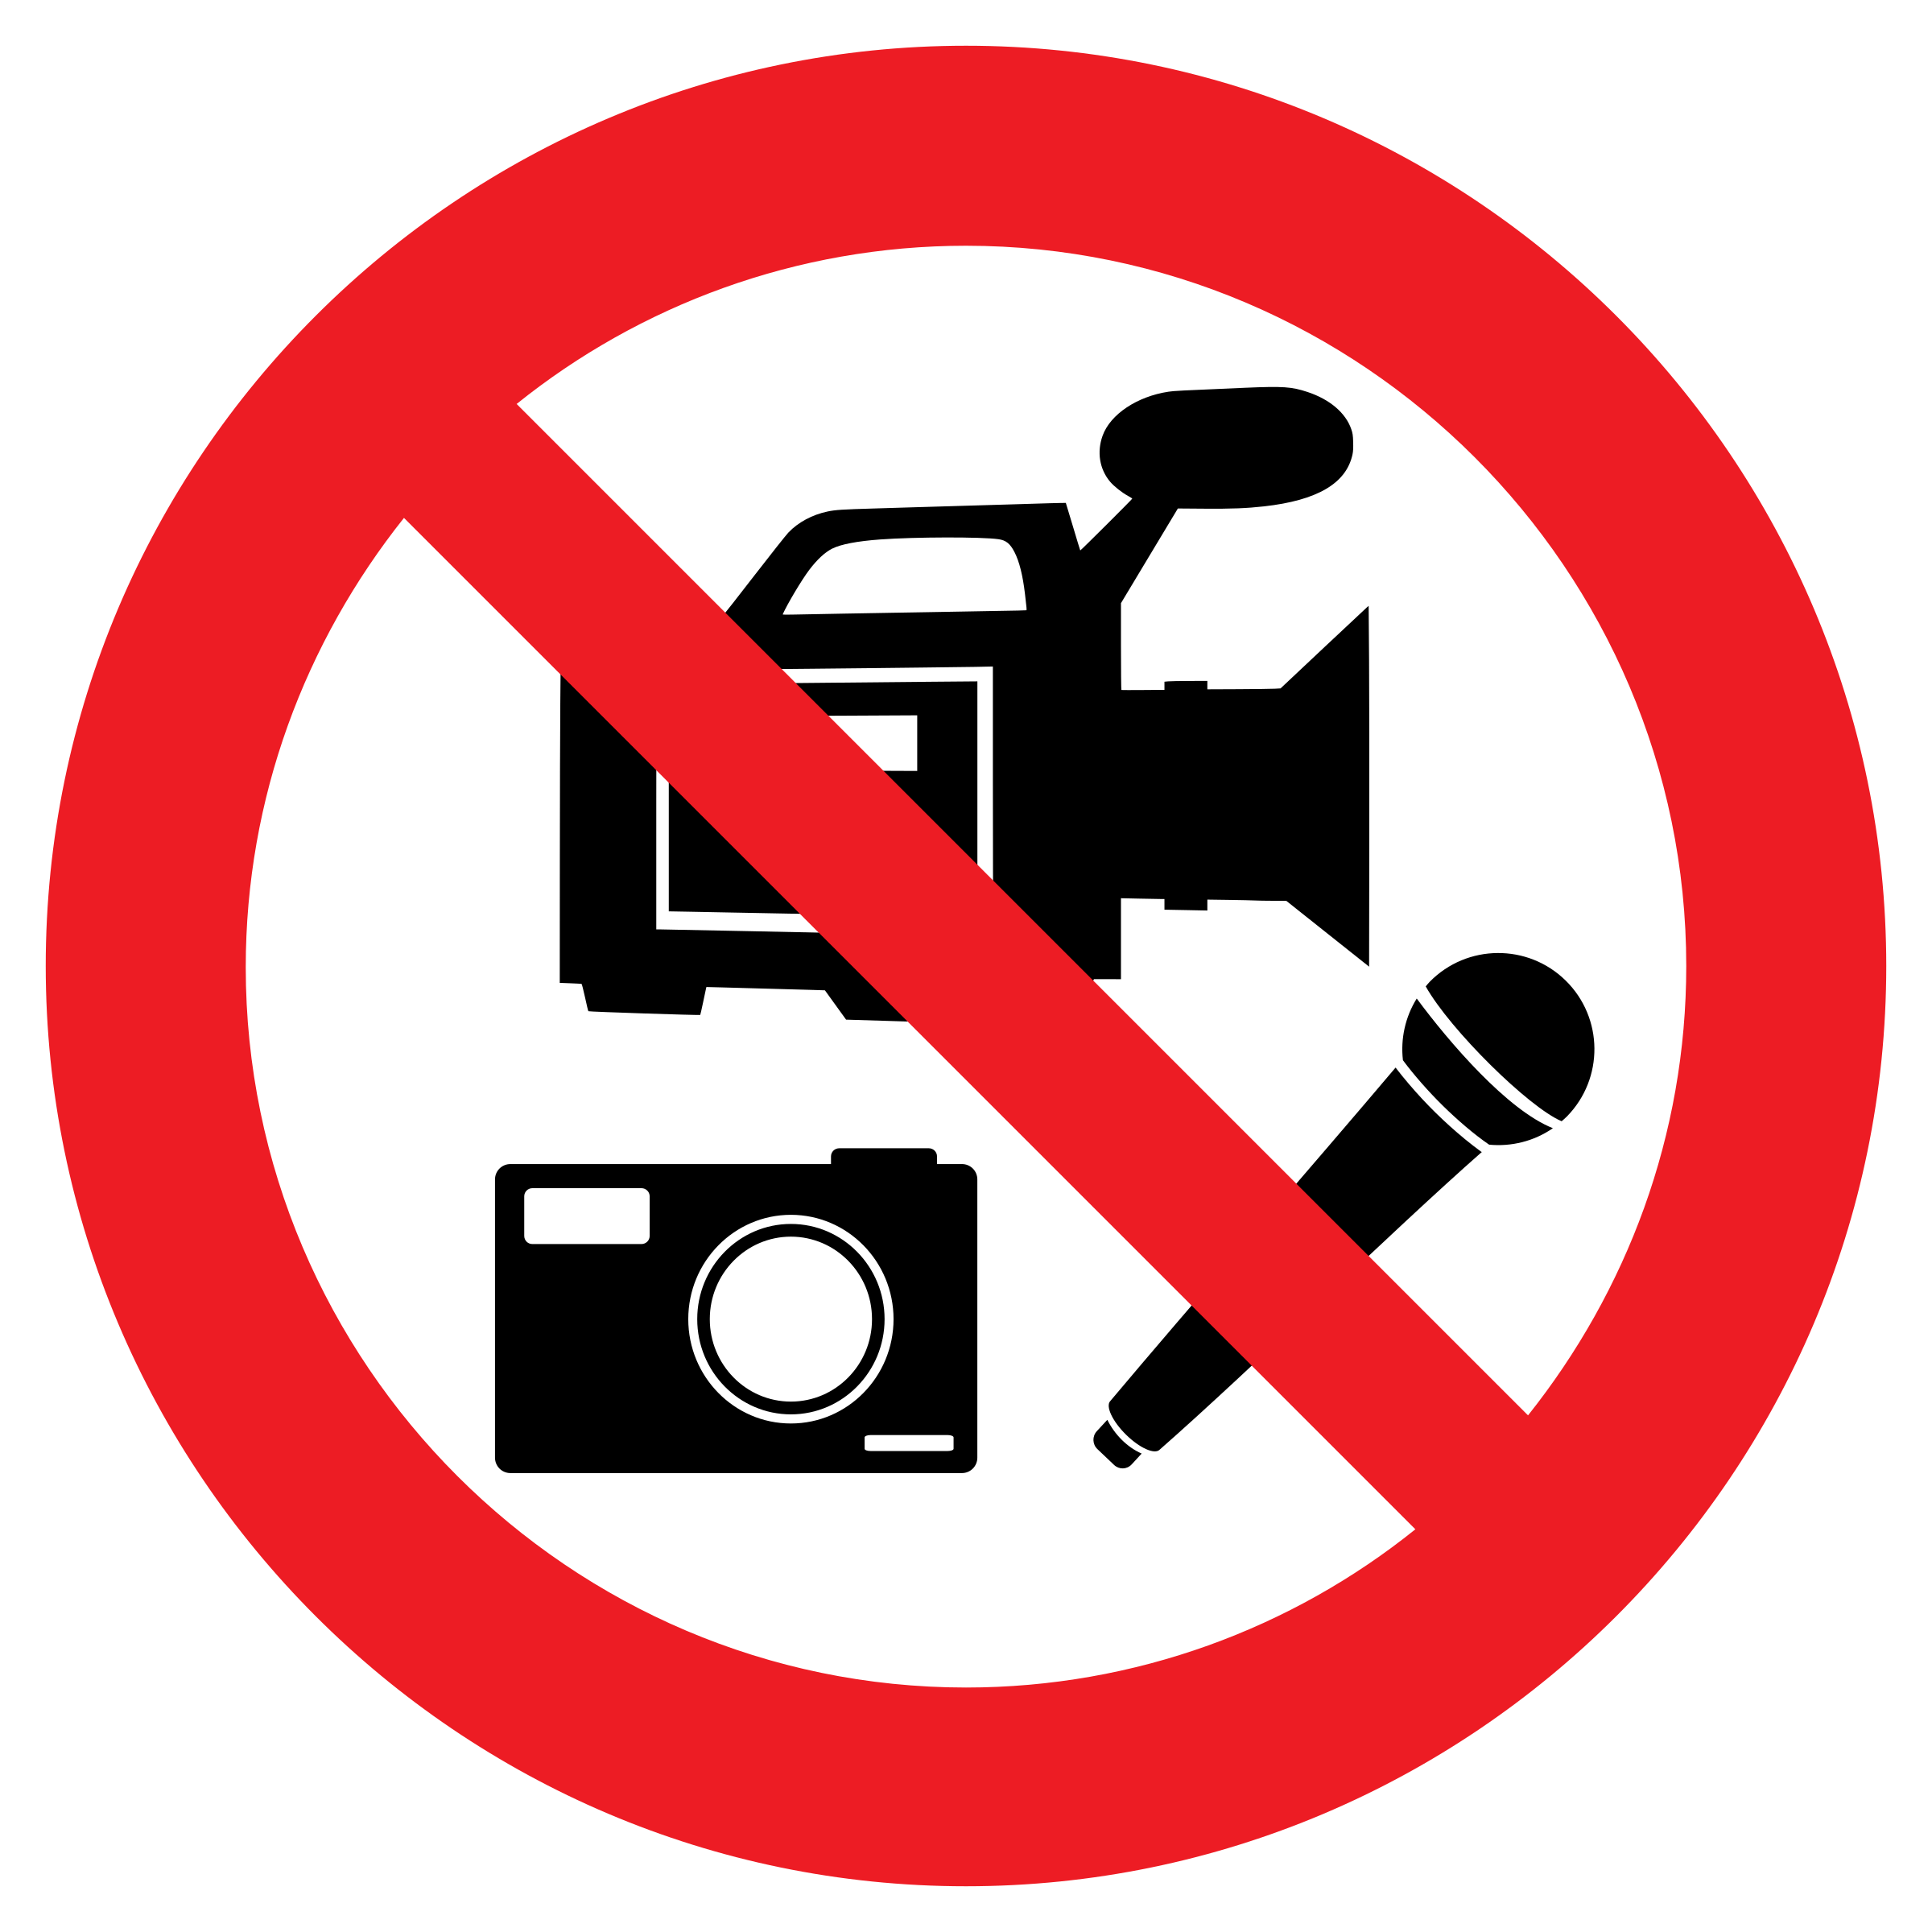 No media recording allowed by Juhele